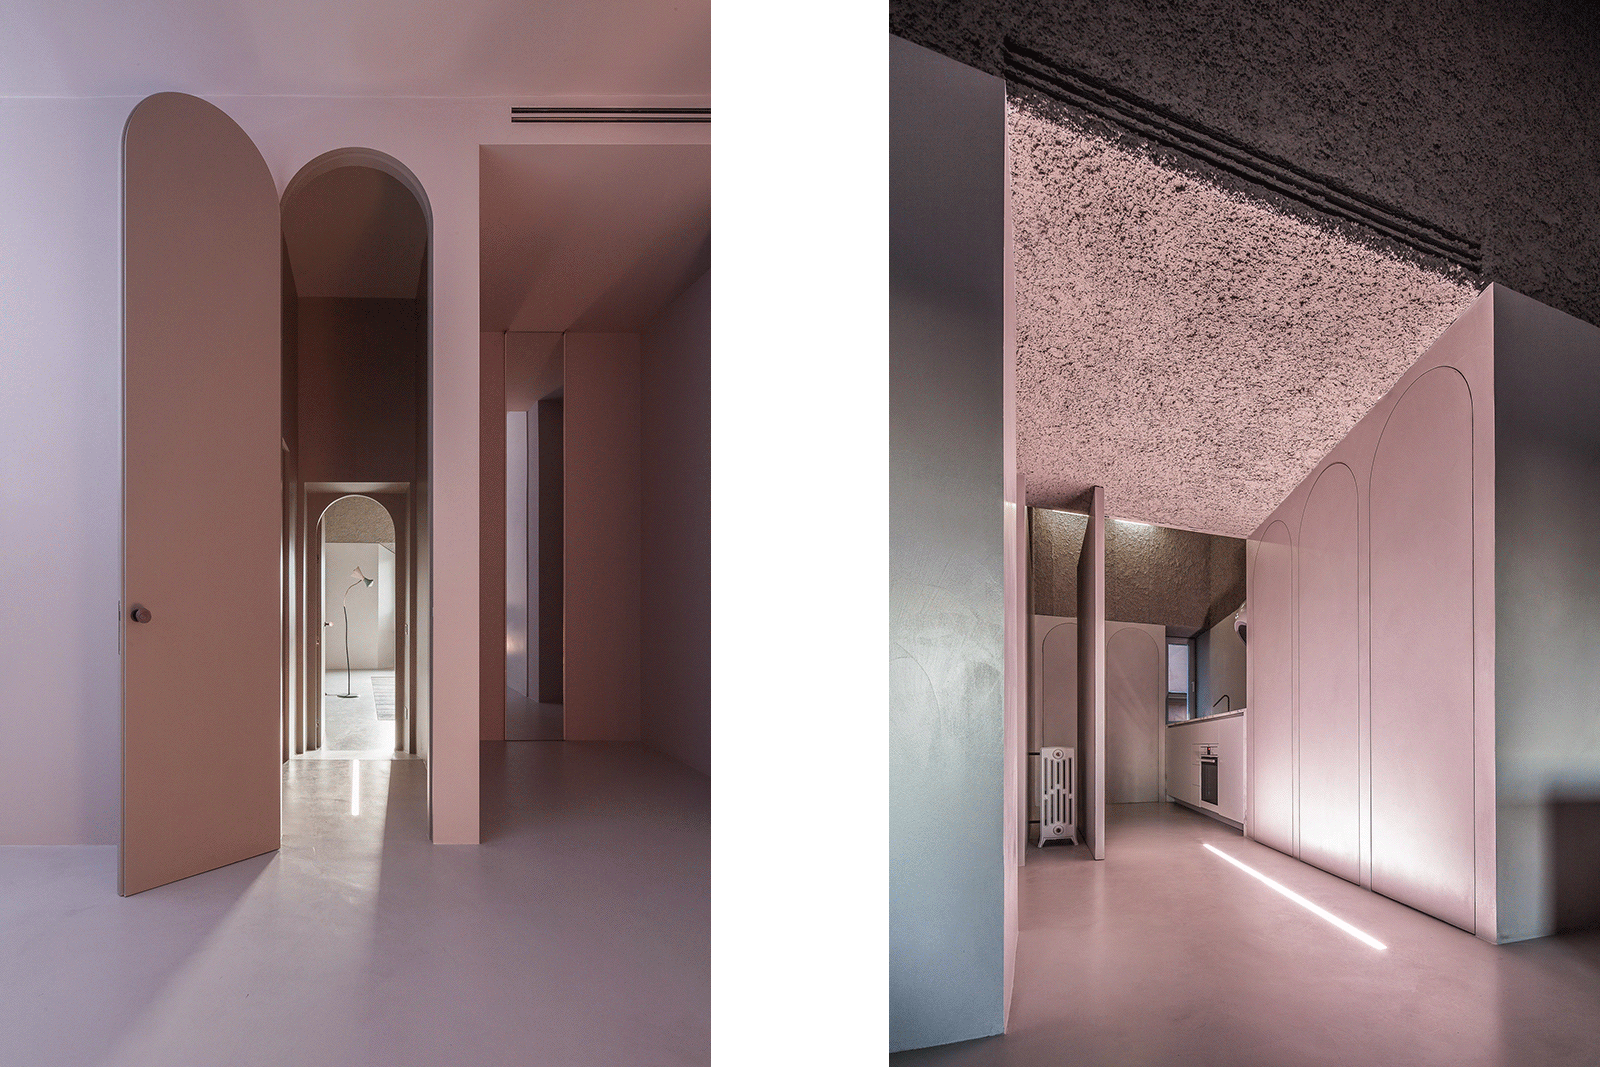 Antonino Cardillo, House of Dust, Rome, Italy